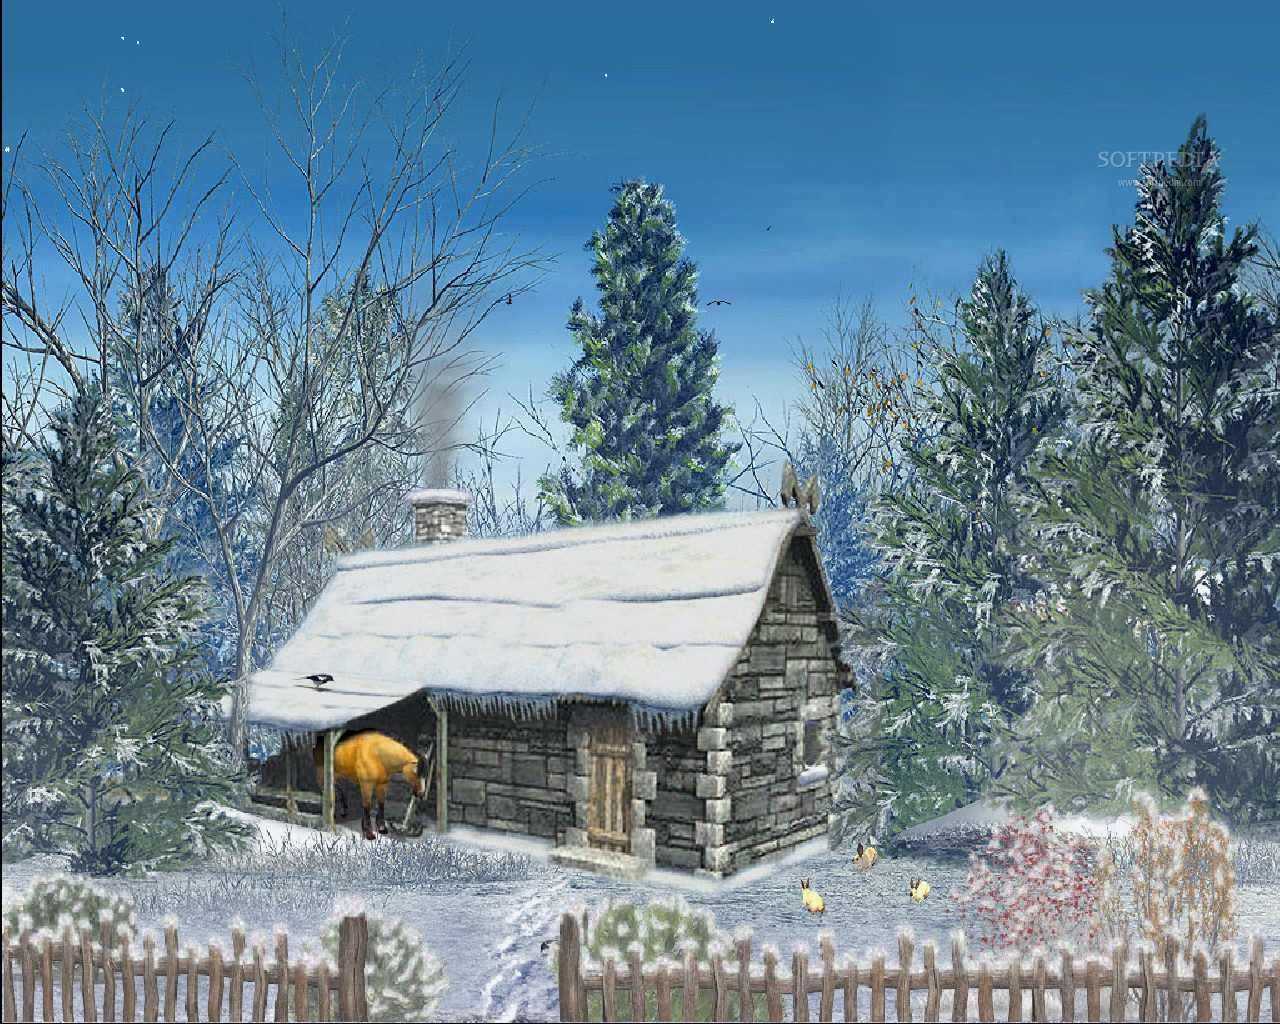 Snowy christmas scenes wallpaper wallpapersafari christmas snowy christmas scenes wallpaper wallpapersafari voltagebd Image collections